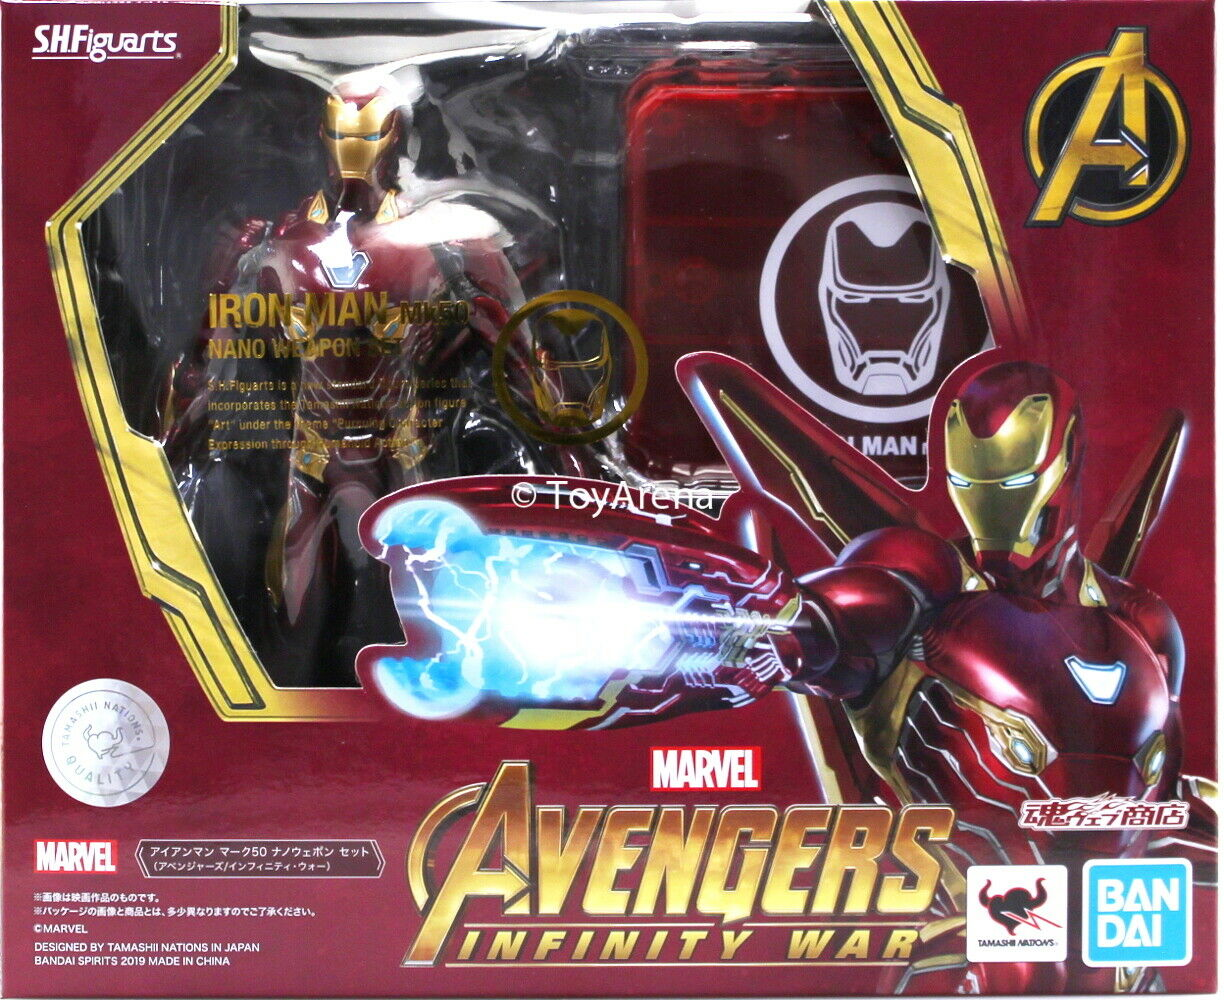 S.H. Figuarts Iron Man Mark L (50) Nano Weapon Set Avengers Infinity War Figure